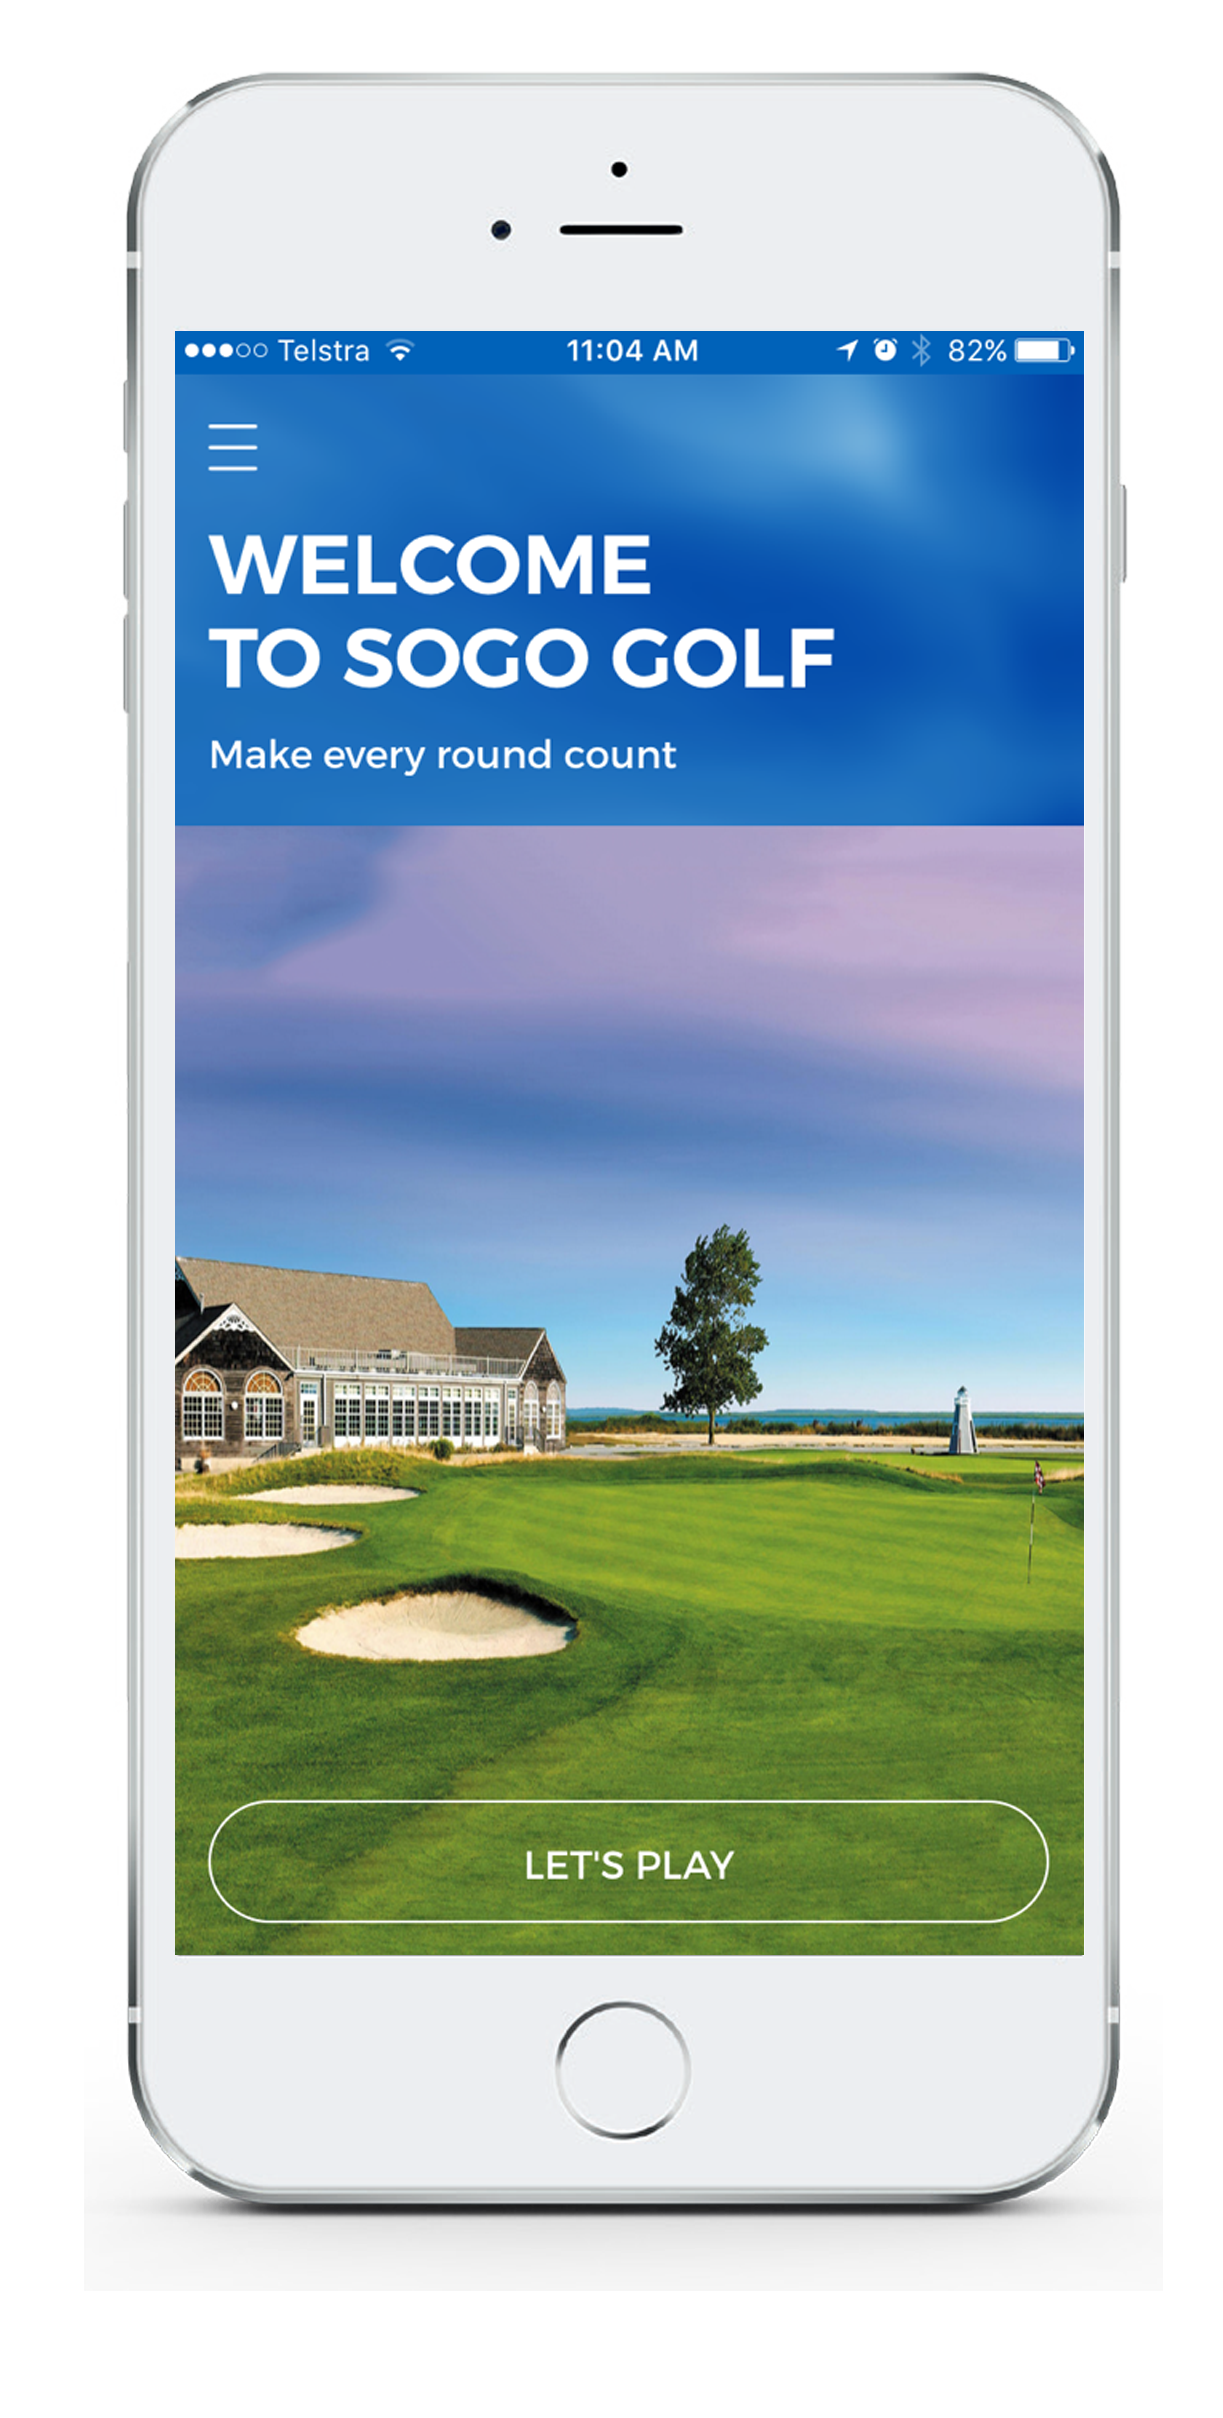 The benefit of Gold - As a SOGO Golf Club member you will be given Gold status on the SOGO Golf App,giving you an all access pass to Australia's most innovative golf competition platform.Cant get to Club Comp days?On SOGO you can compete on any day from any course in Australia. SOGO can turn every social round into a Conforming Social Score that can be submitted to your handicap. We aim to give our members more flexibility in when and where they compete and Make Every Round Count™Record your playing history -The SOGO Golf App records every round you play so you can focus on improving your game and playing against your best results on each course.Check your handicap - The SOGO Golf App links directly with the national Golf Link database and will automatically calculate your daily handicap for every round.Electronic Scoring - The SOGO Golf App will automatically calculate your stableford score for the round and for each hole while you play. Your score is then reviewed and submitted to you Golf Link handicap profile